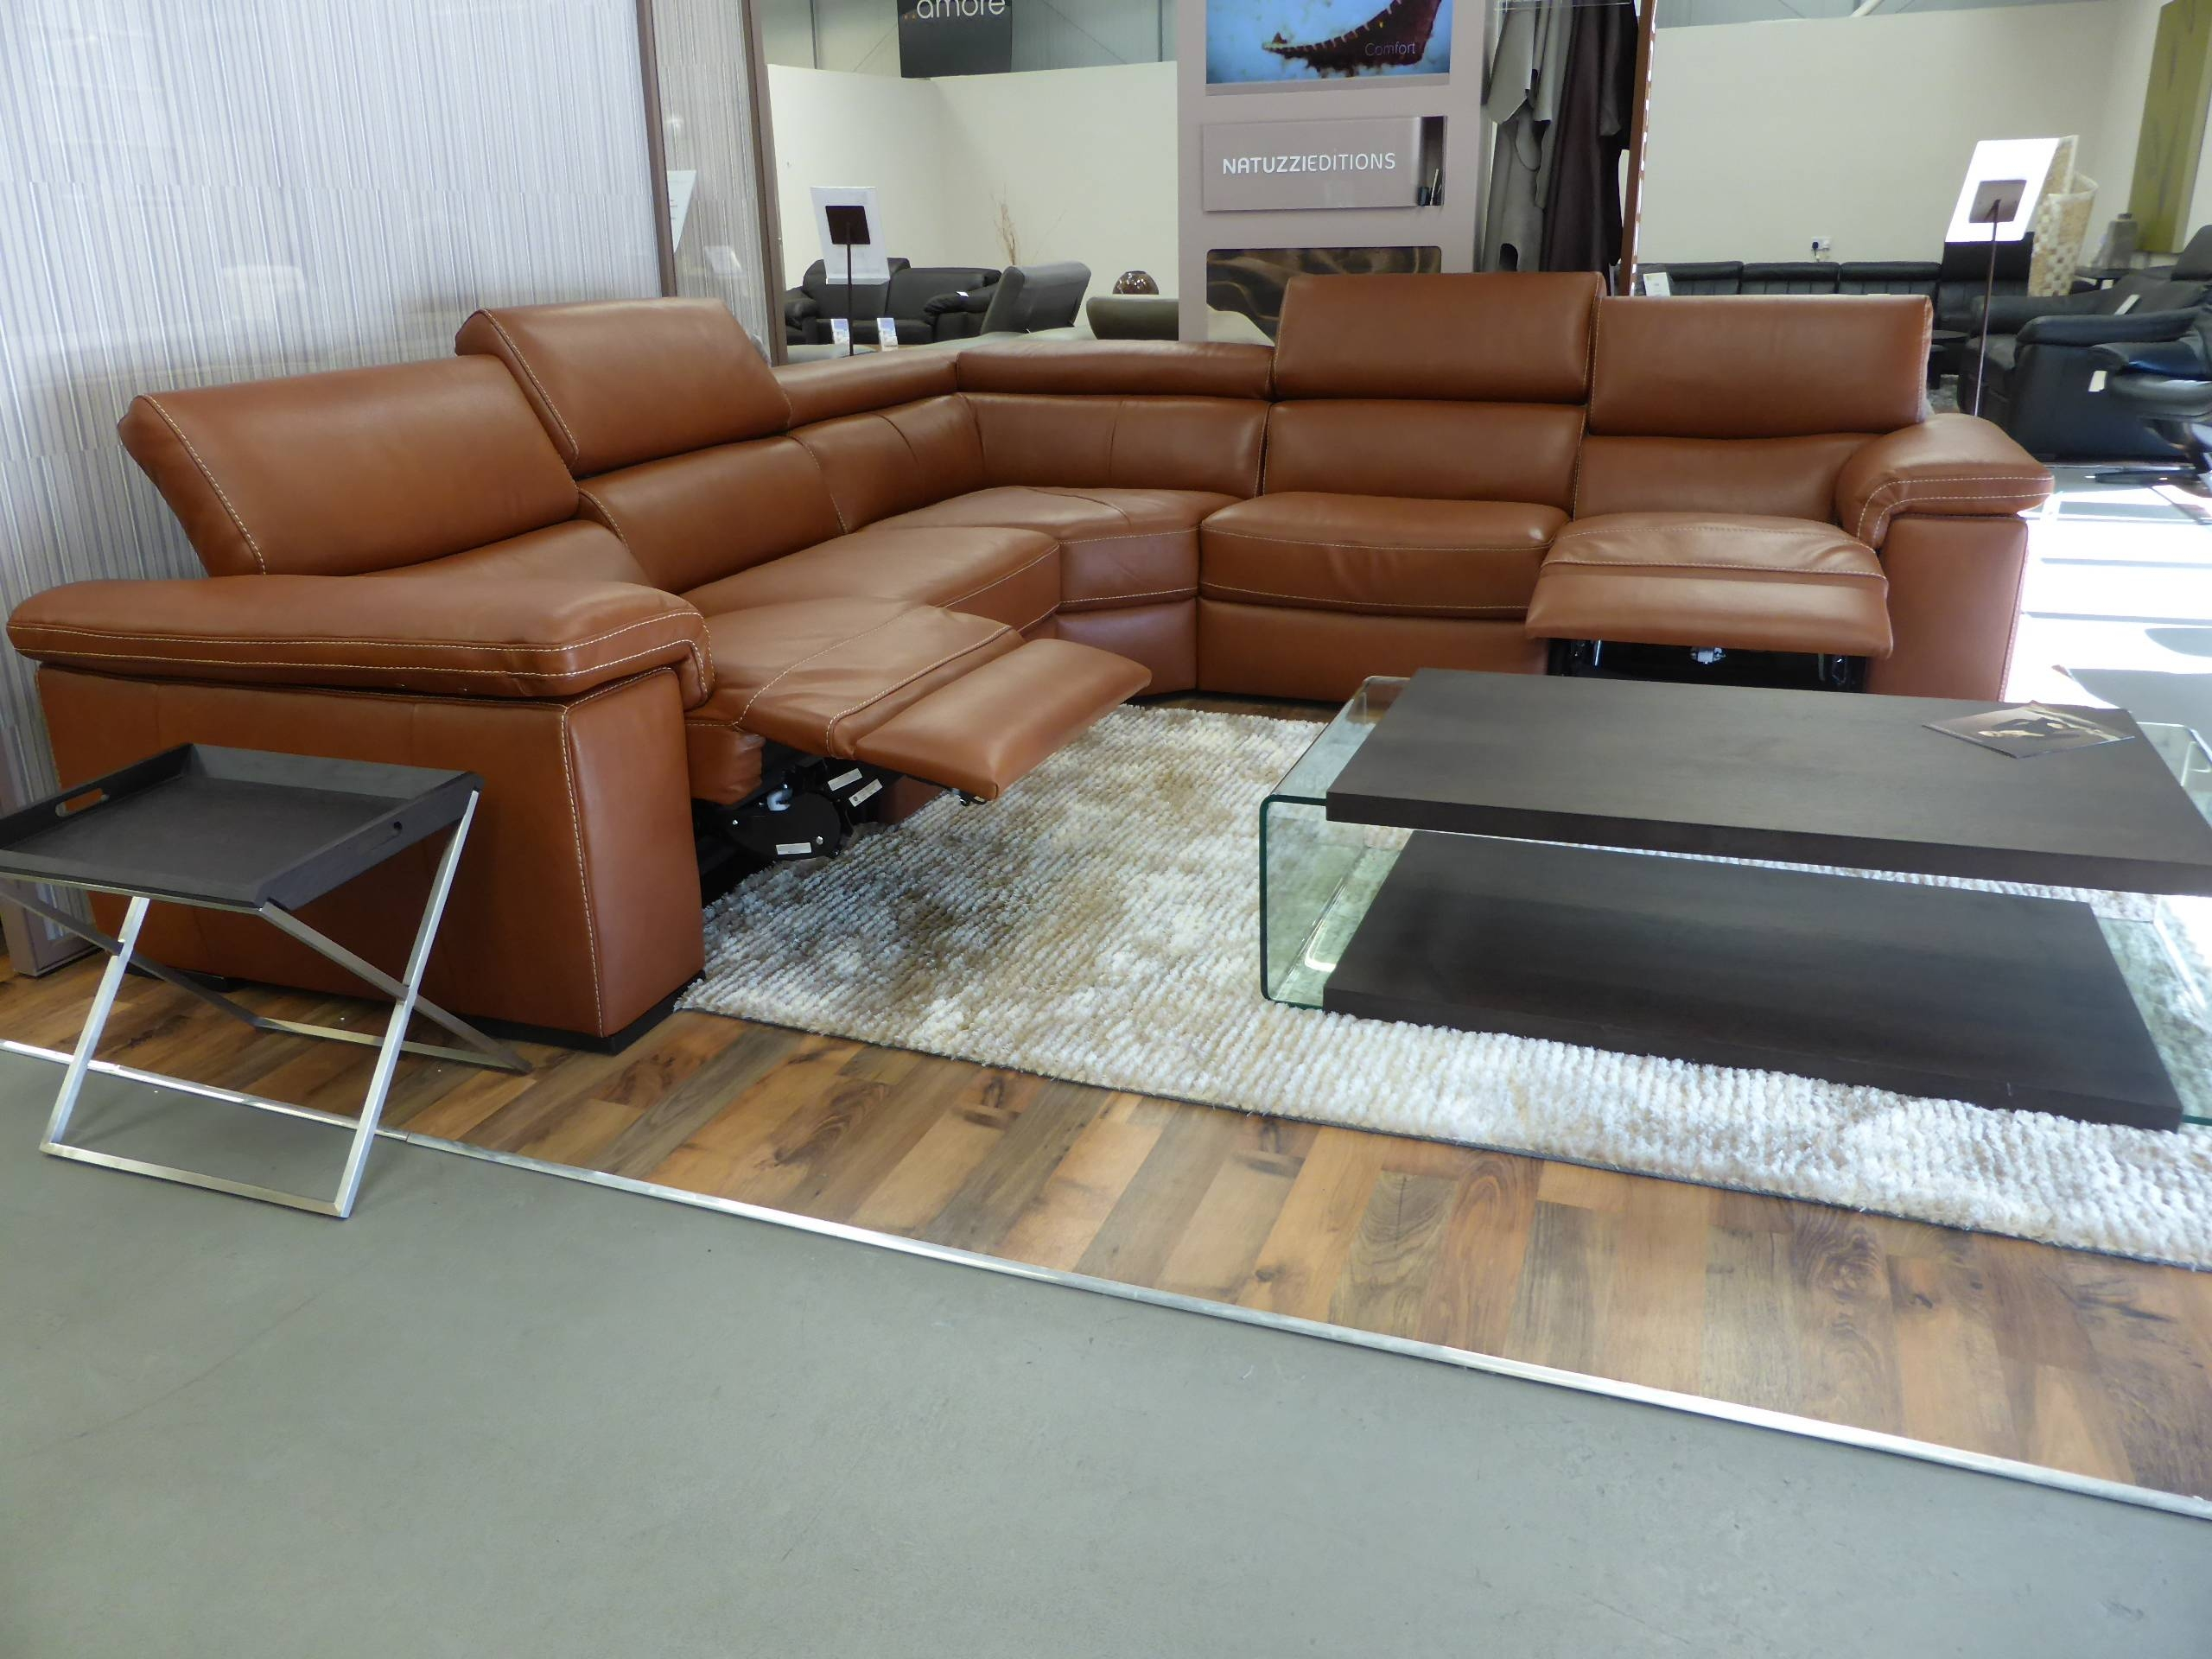 Furniture: Natuzzi Leather Couch | Macy's Leather Furniture intended for Carmel Leather Sofas (Image 7 of 15)